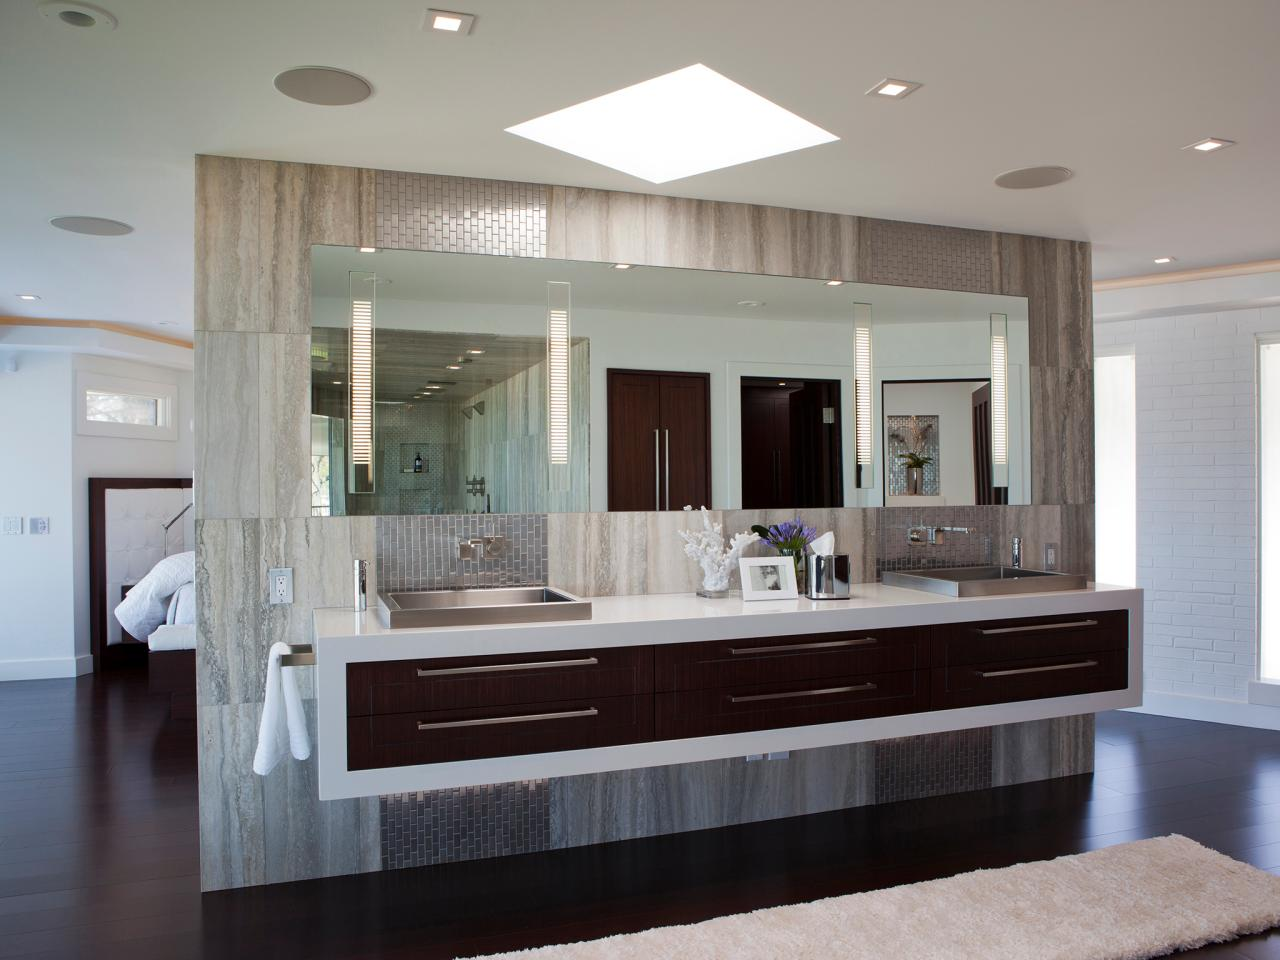 Bathroom stainless steel sinks hgtv for Photos of contemporary bathrooms